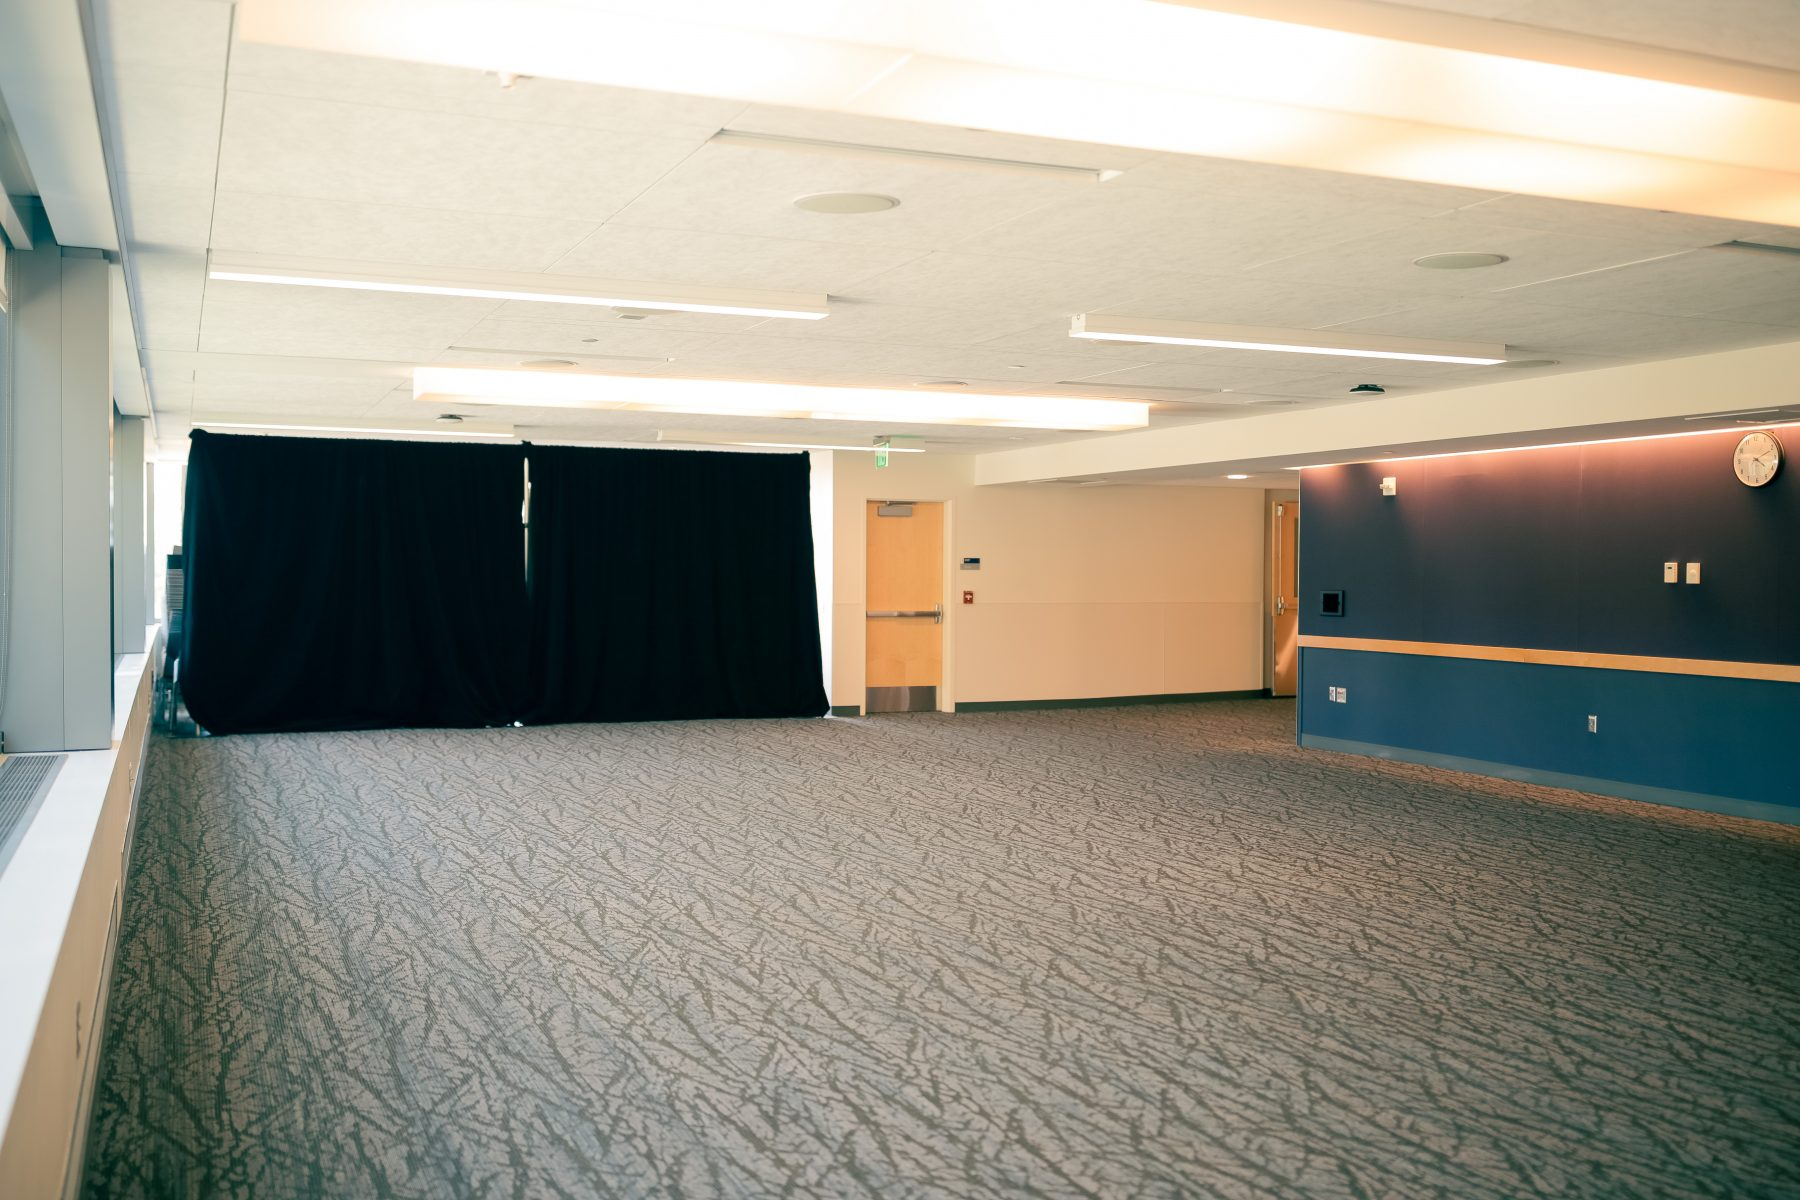 North Pre-Function included with North Ballroom and Both Ballroom rentals